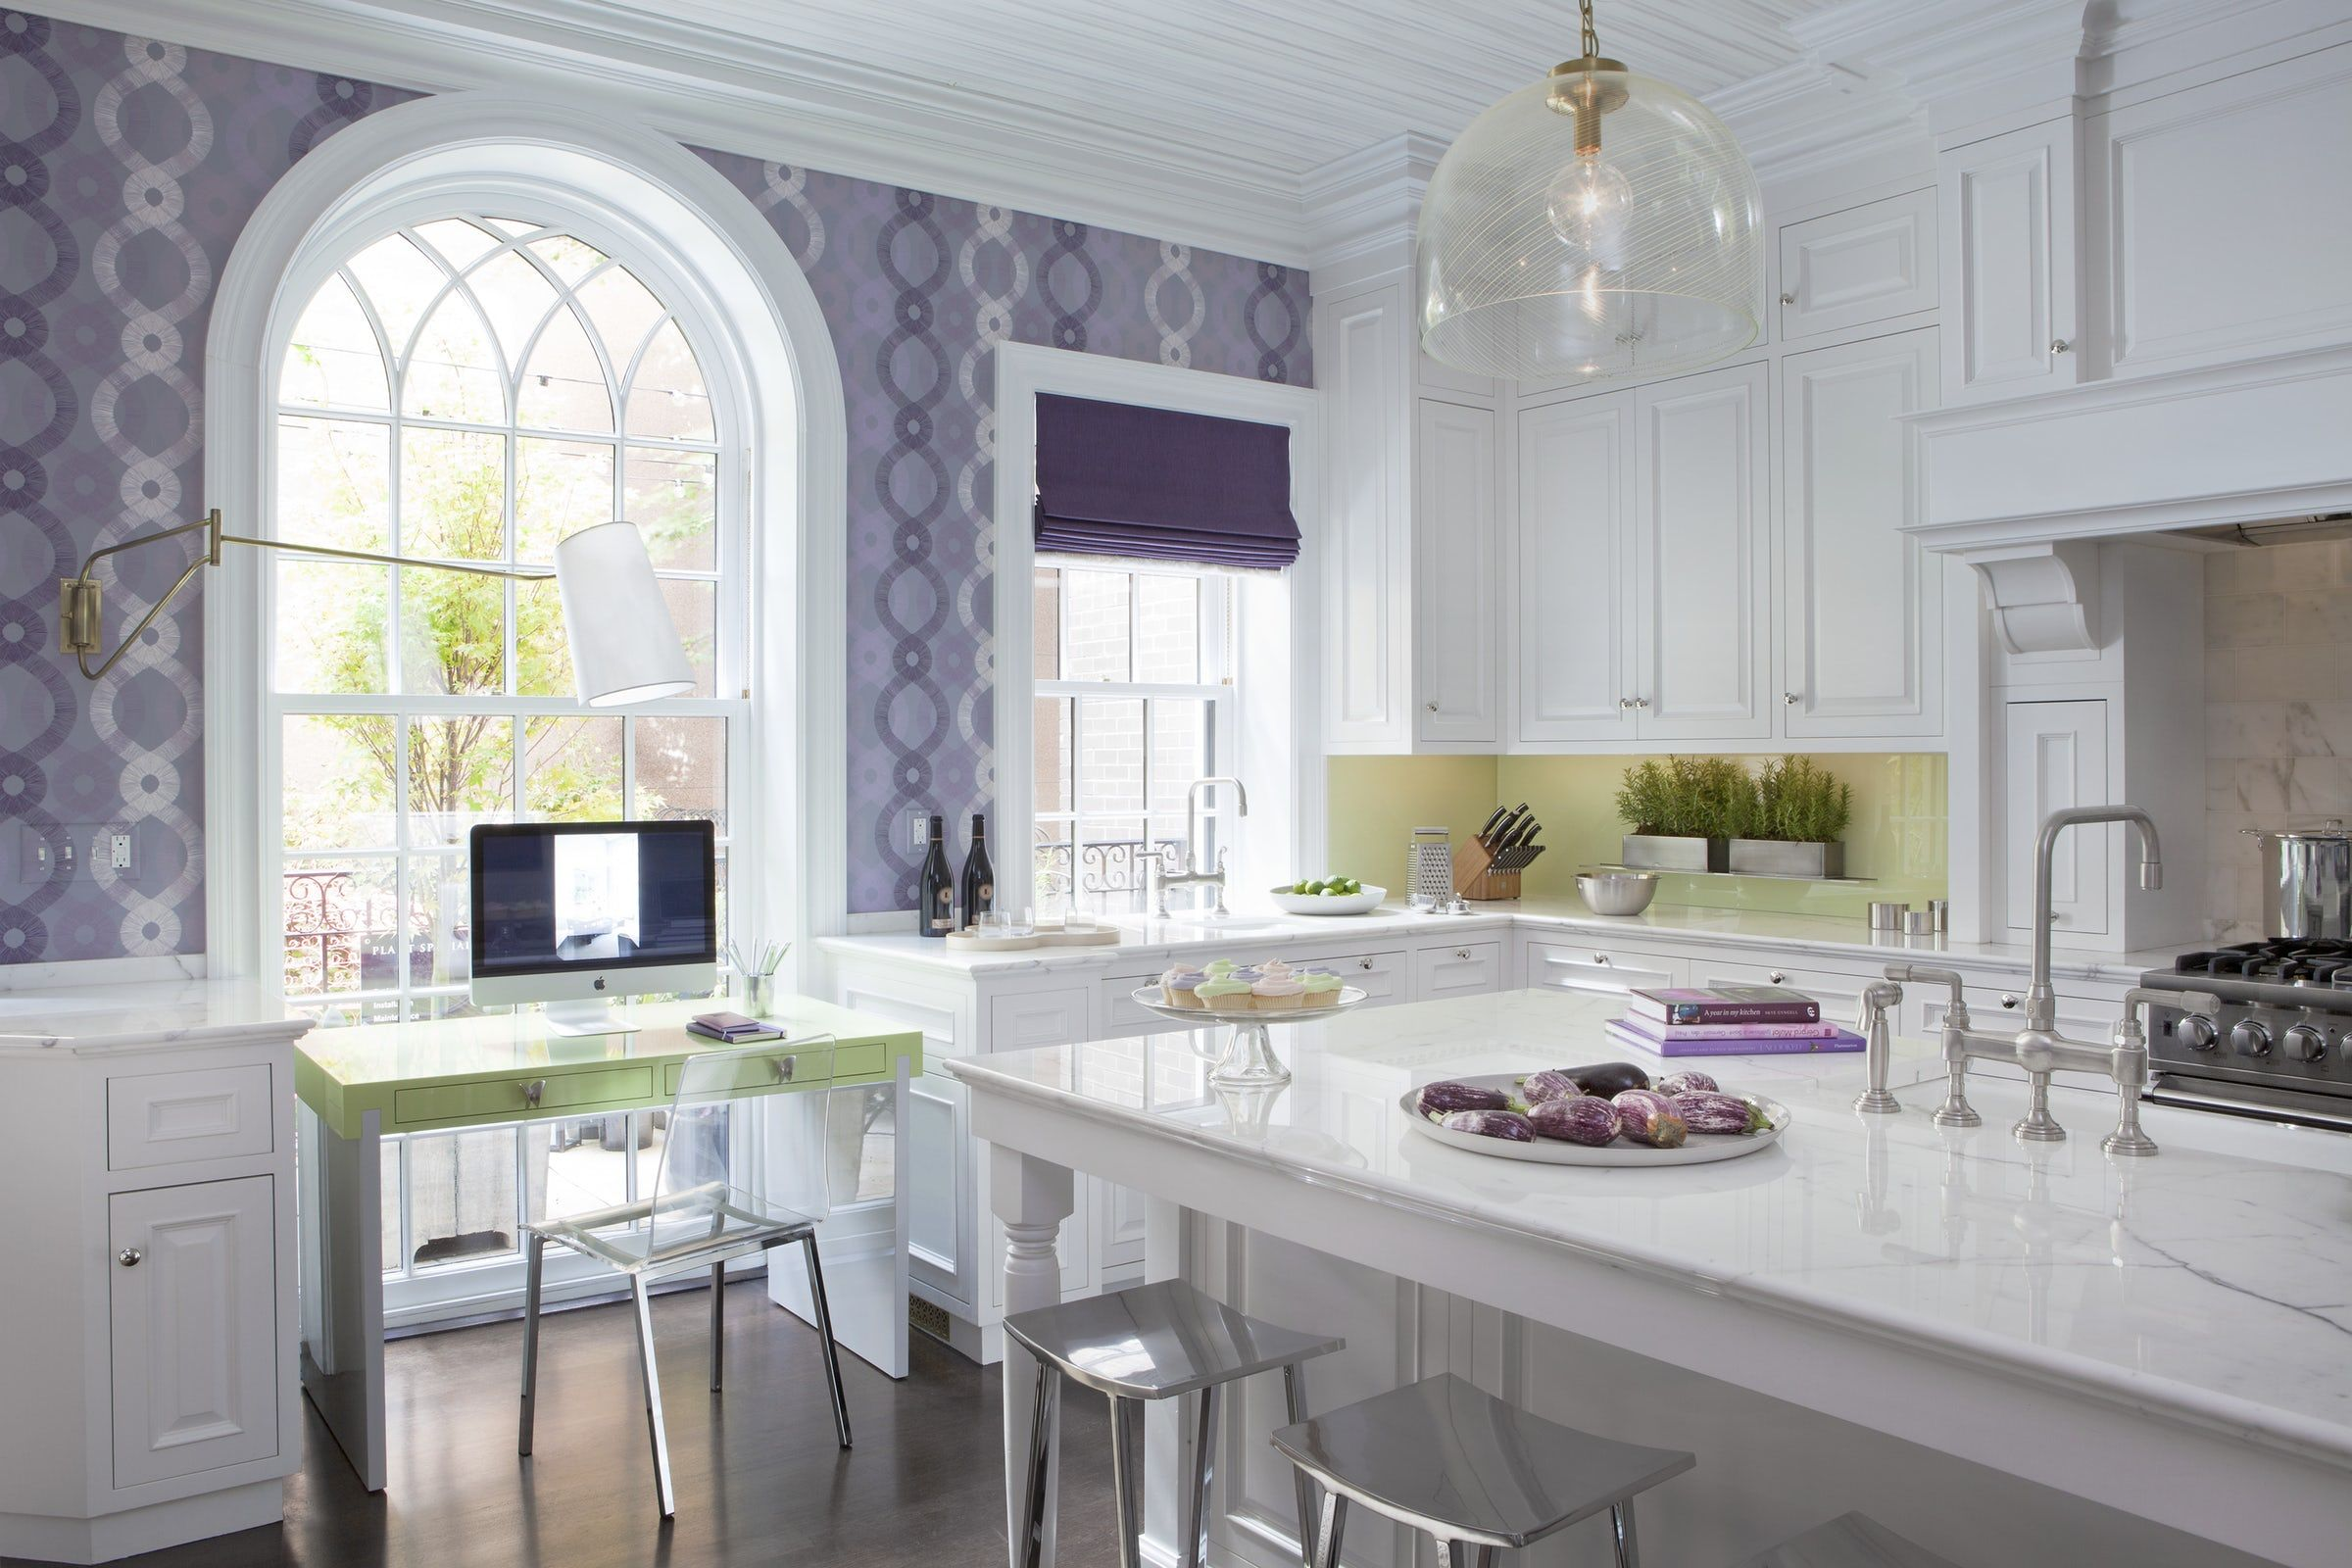 Gorgeous Kitchen Wallpaper Ideas Best Wallpaper For Kitchen Walls